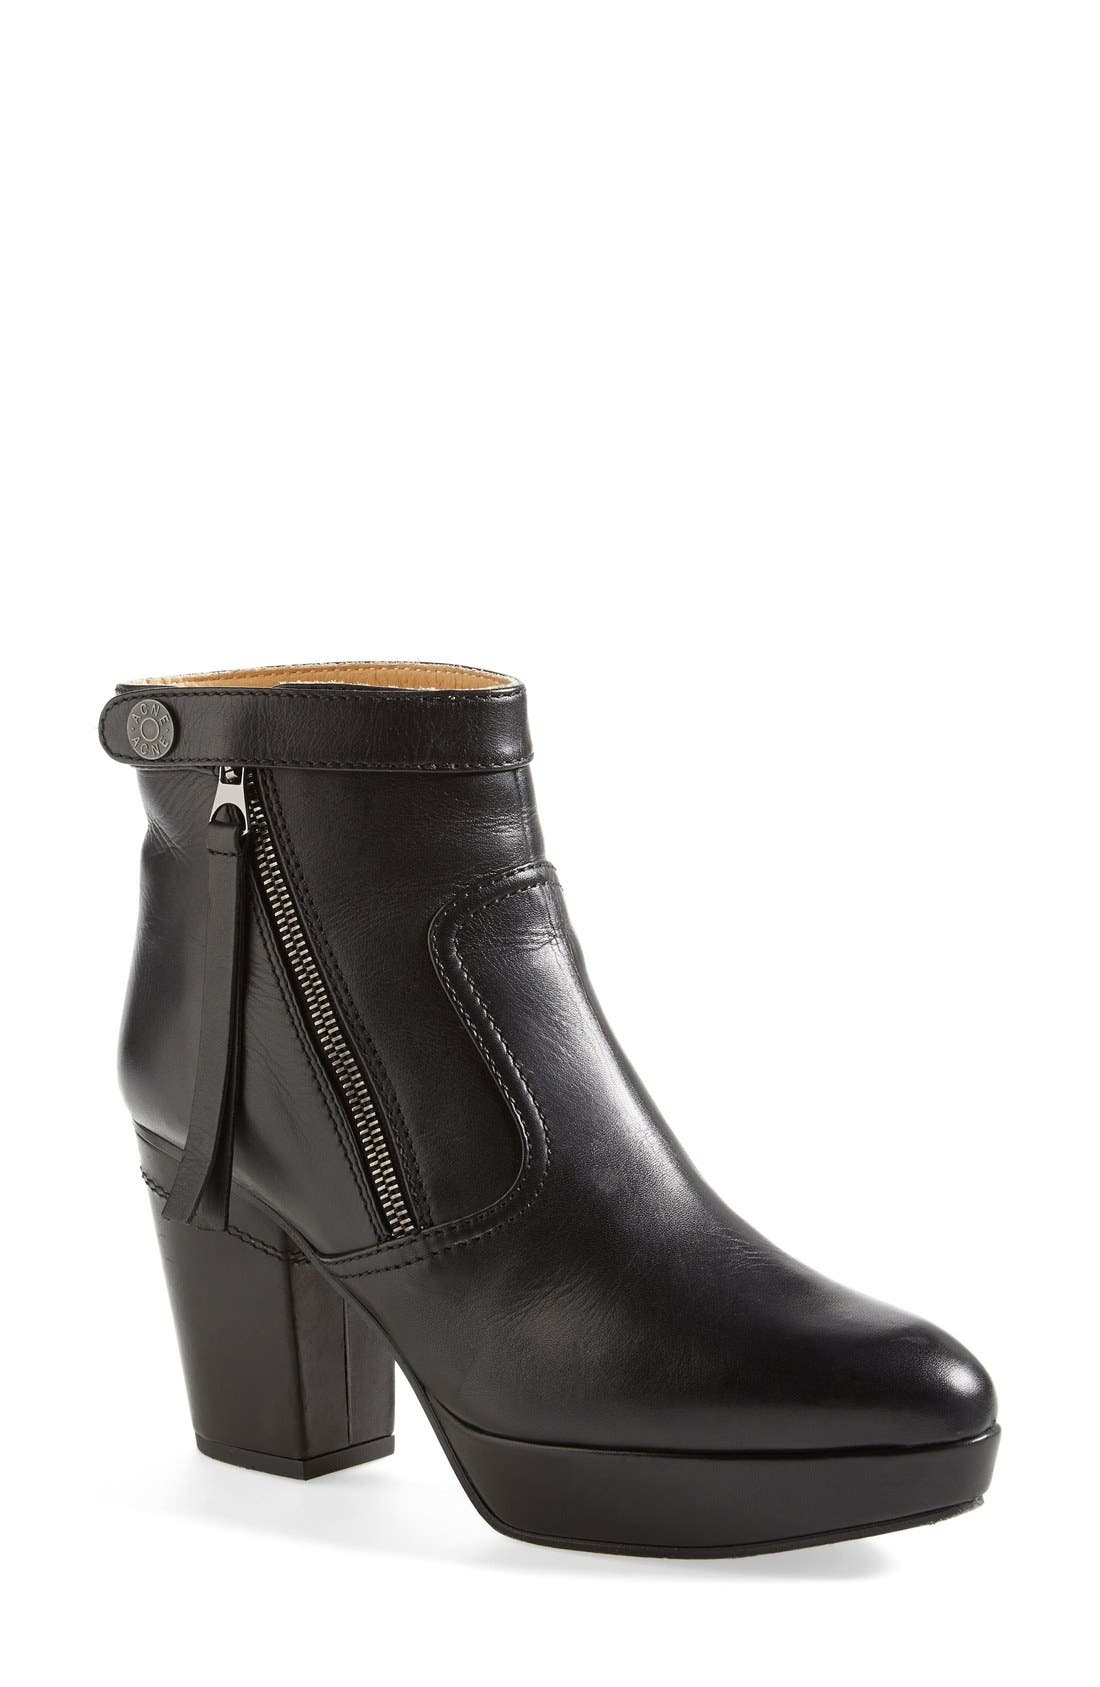 Alternate Image 1 Selected - Acne Studios 'Track' Platform Ankle Boot (Women)